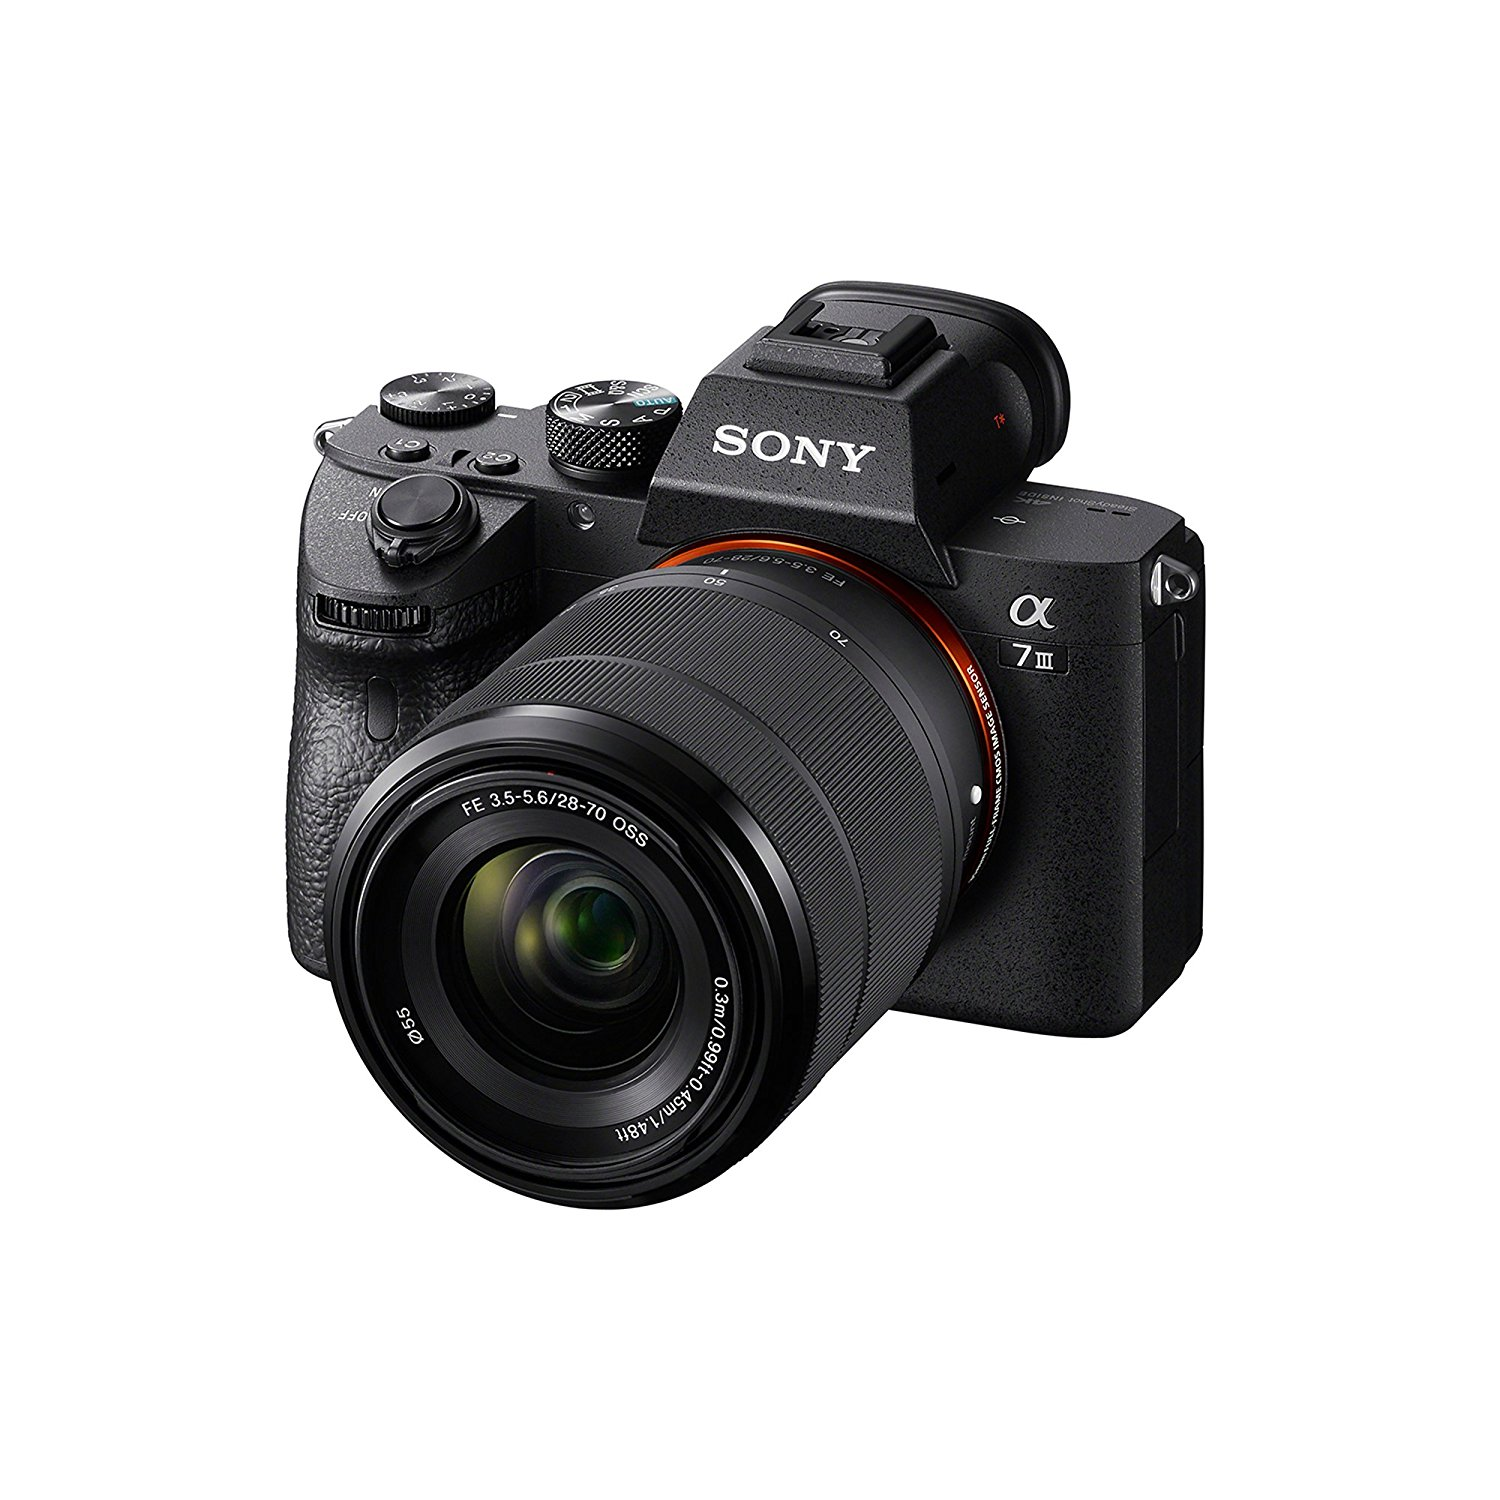 Sony A7 III w 28-70mm lens kit